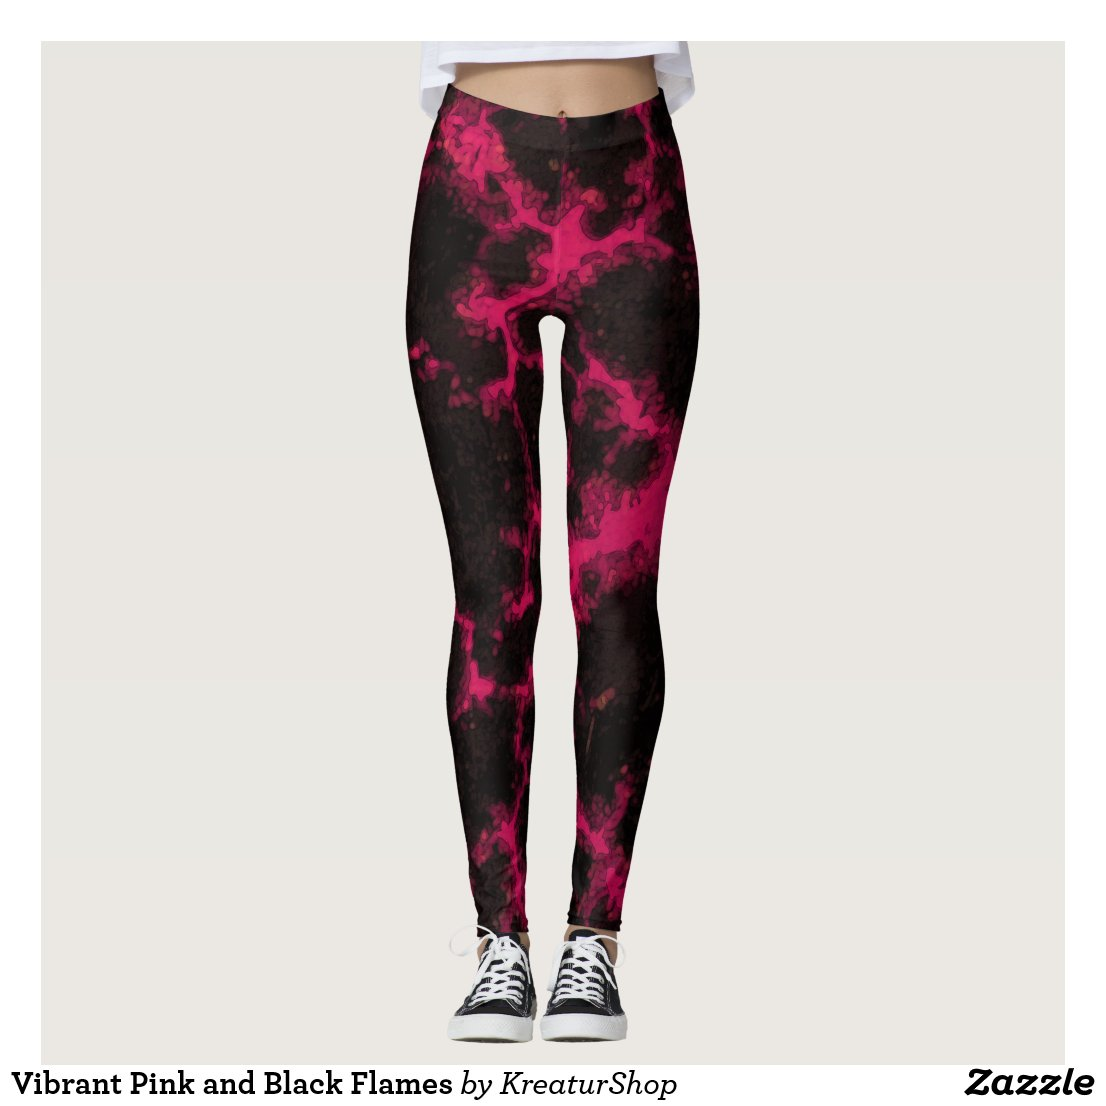 Vibrant Pink and Black Flames